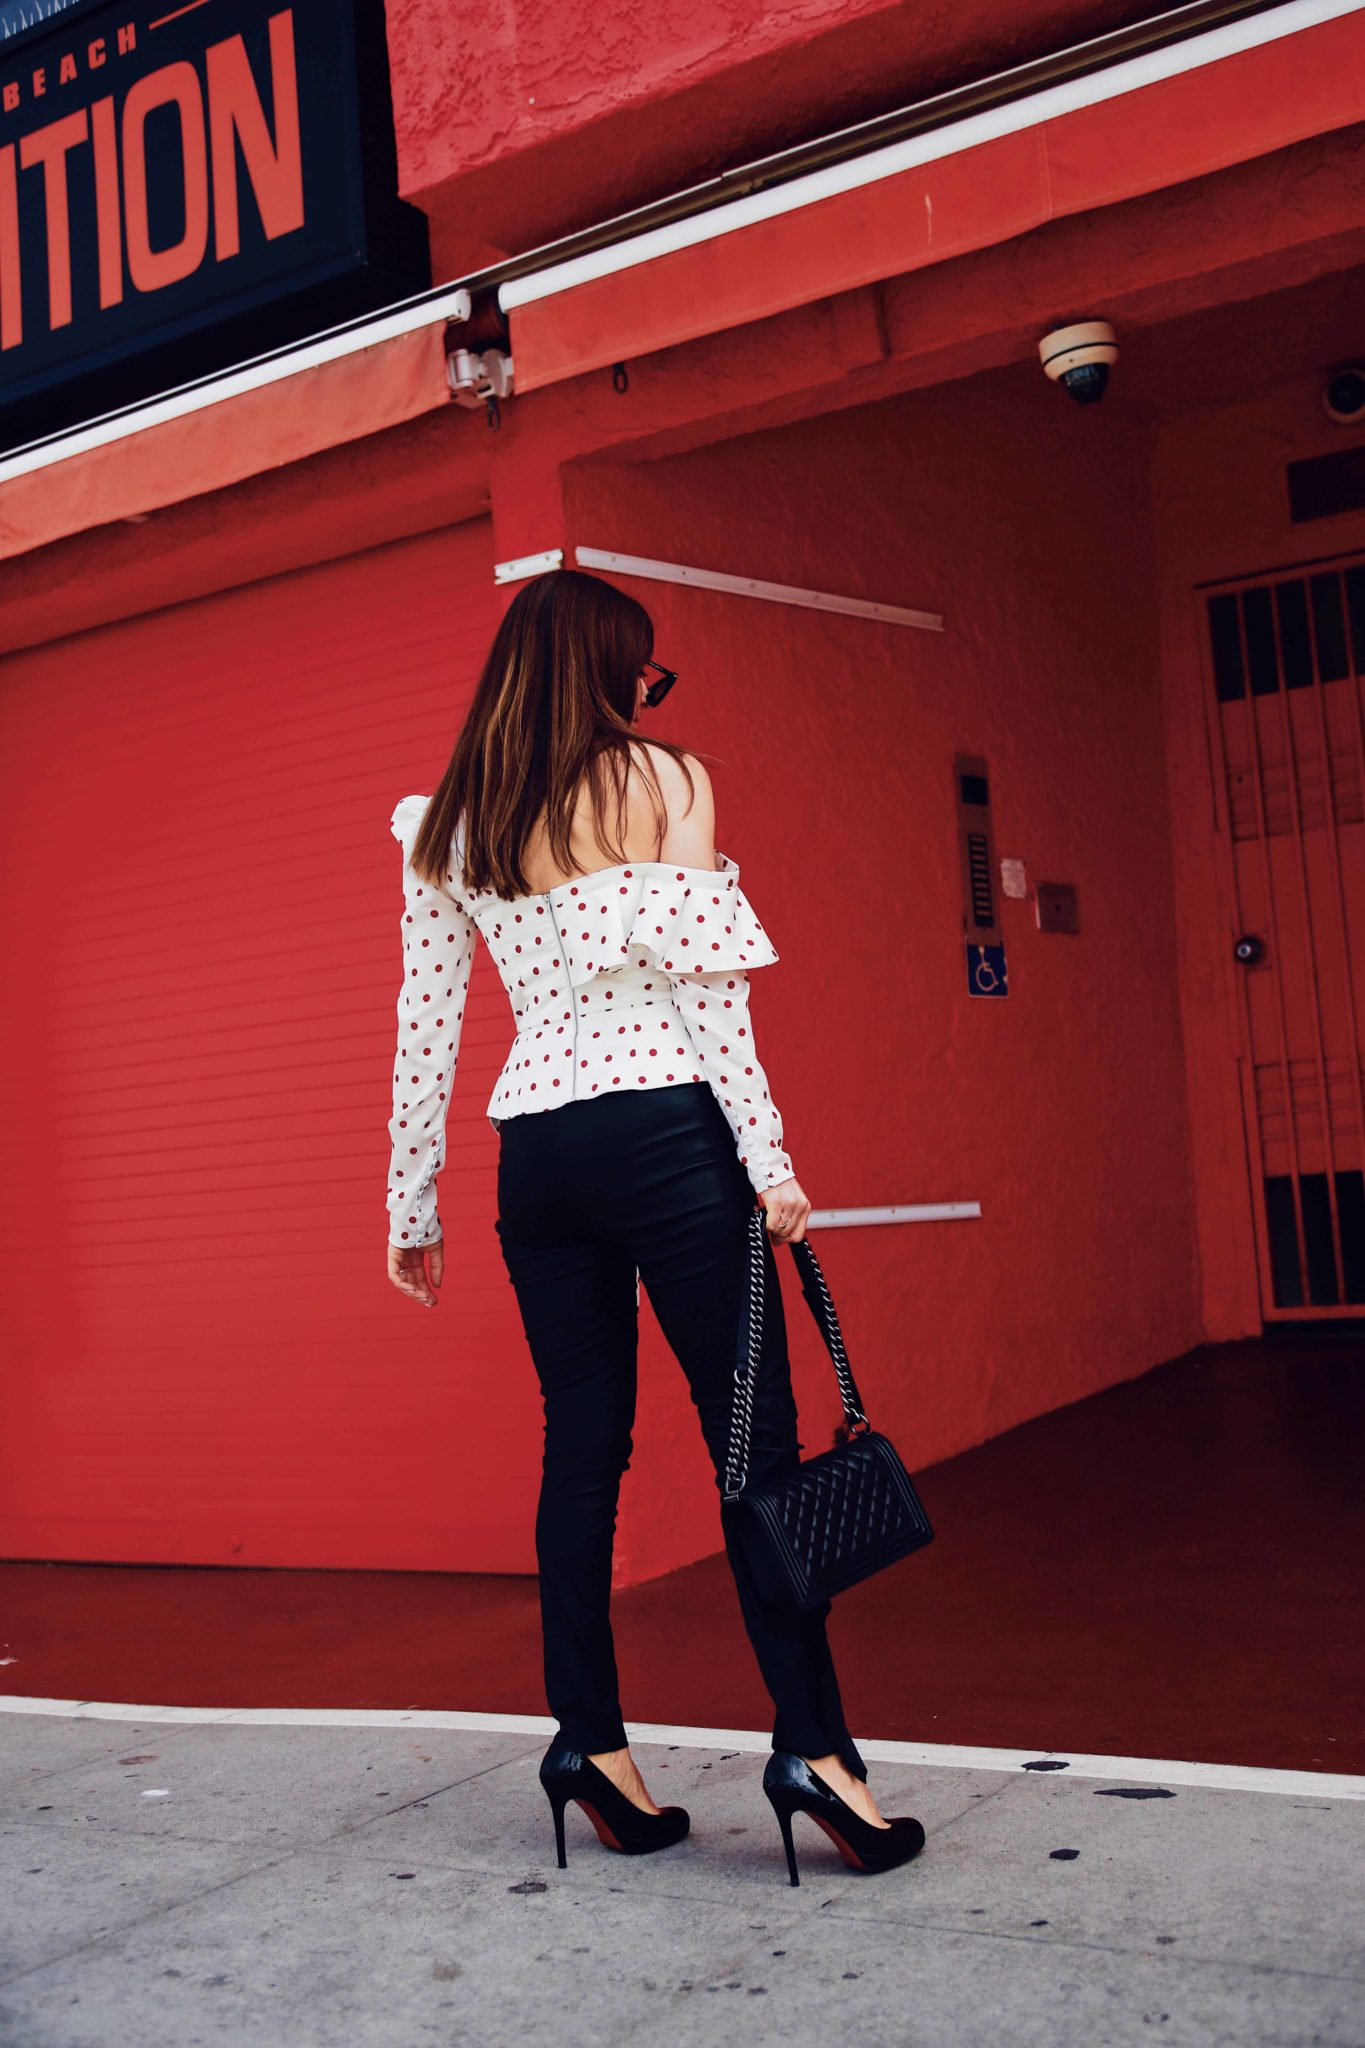 Evening tops: Statement blouse by Self Portrait via If Chic - More about this polka dots blouse on Houseofcomil.com